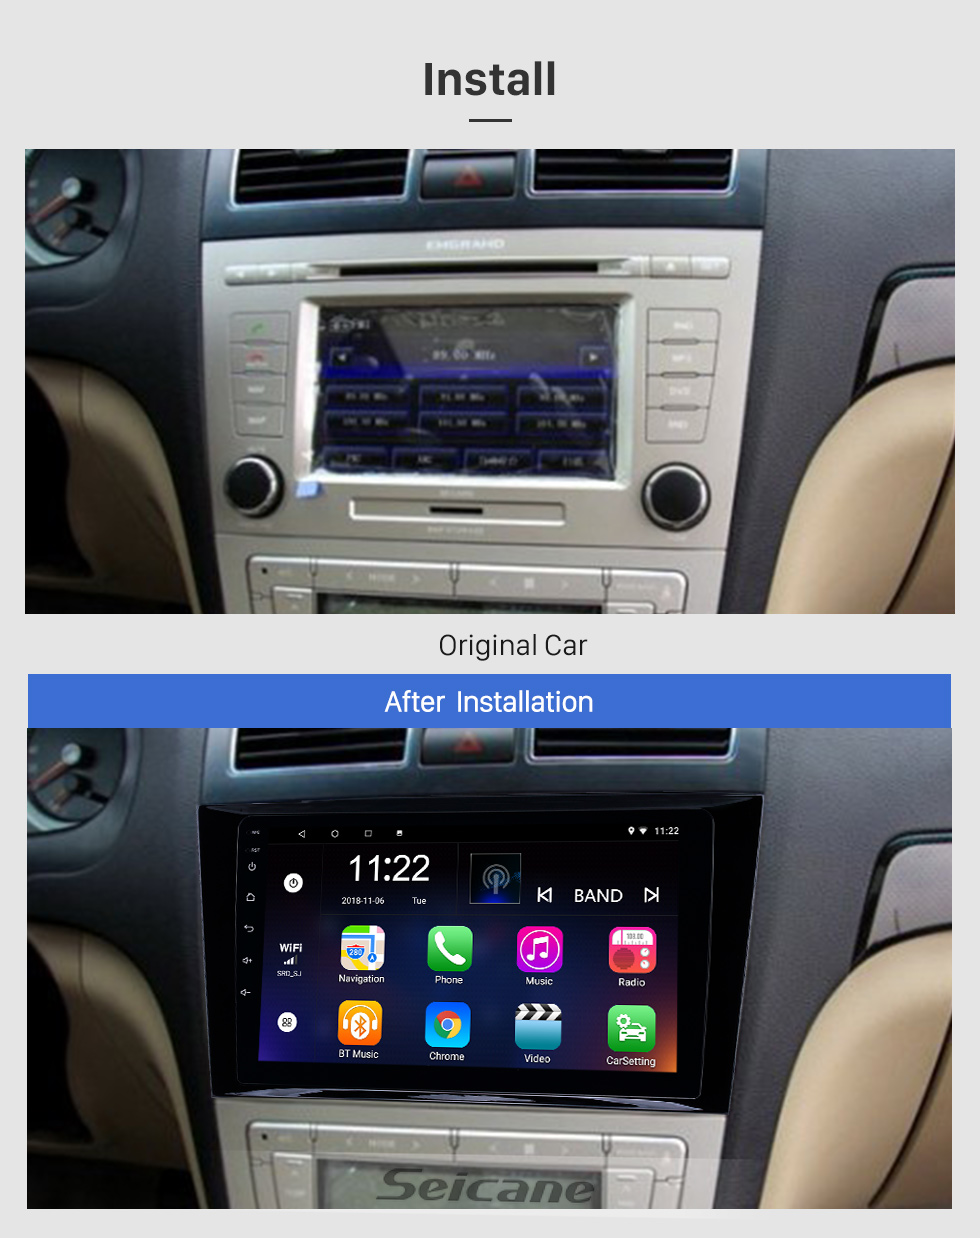 Seicane HD Touchscreen 9 inch Android 8.1 GPS Navigation Radio for 2009-2015 Geely Emgrand EC8 with Bluetooth AUX support Carplay TPMS